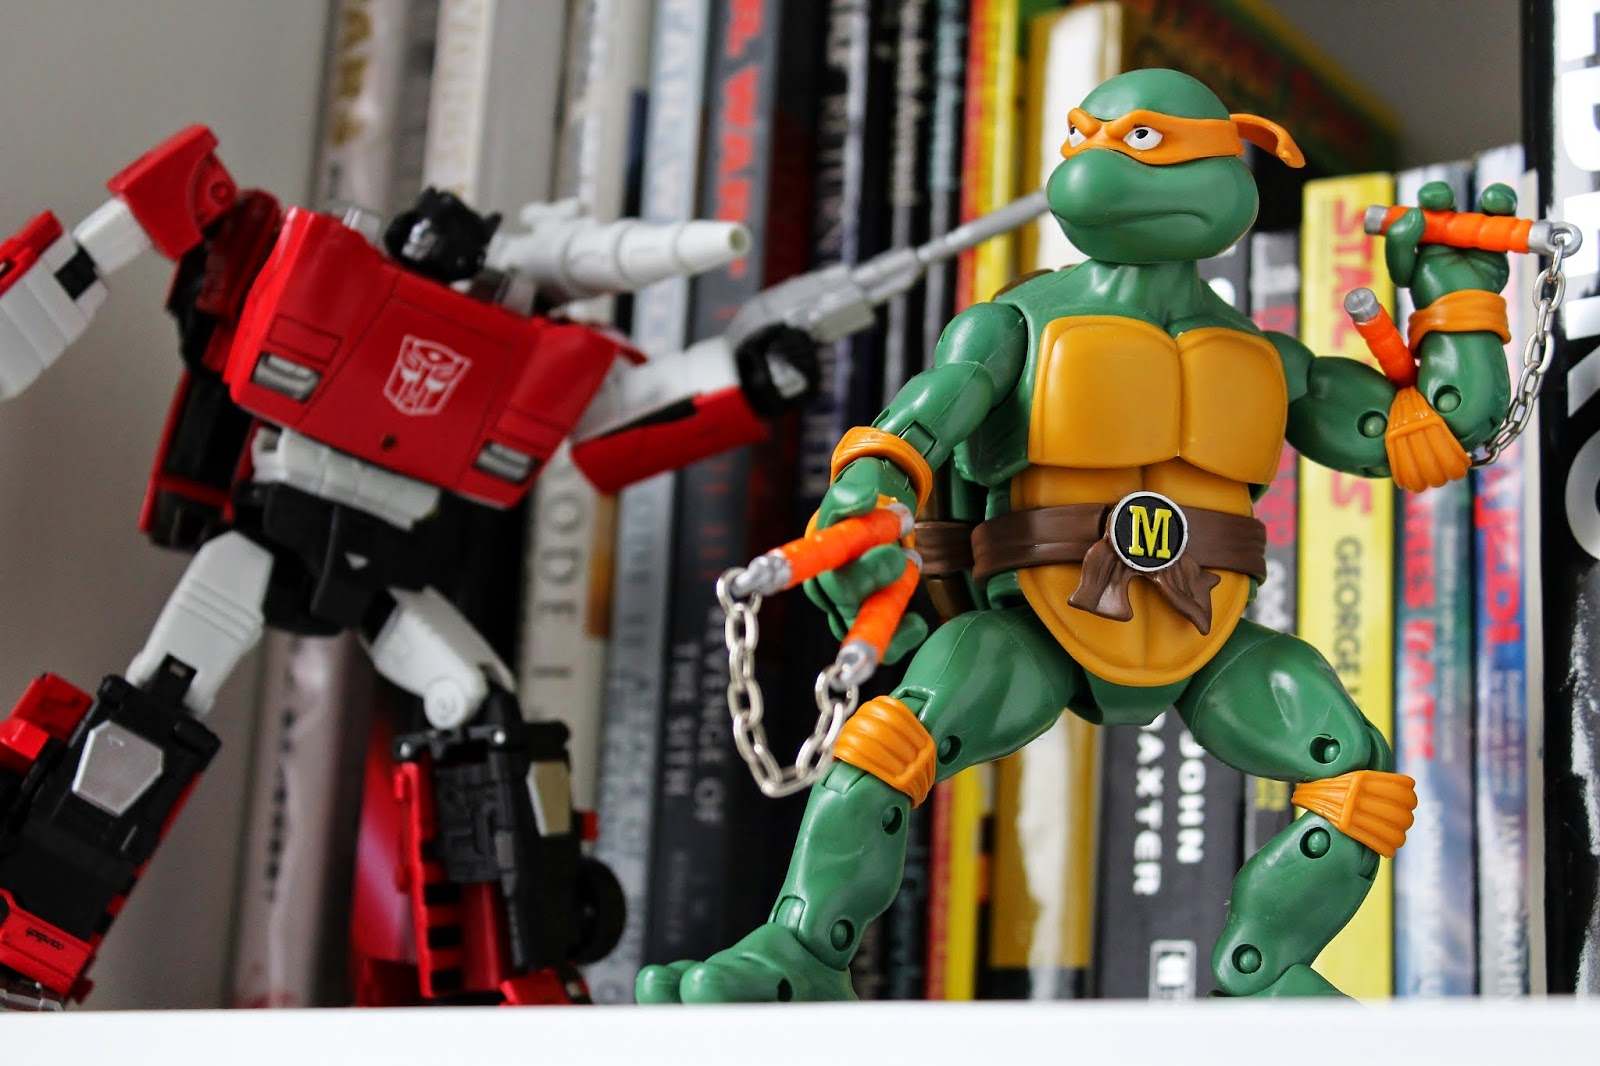 Transformers Masterpiece Sideswipe and TMNT Classics Michelangelo on the shelf | The Mos Espa Collection